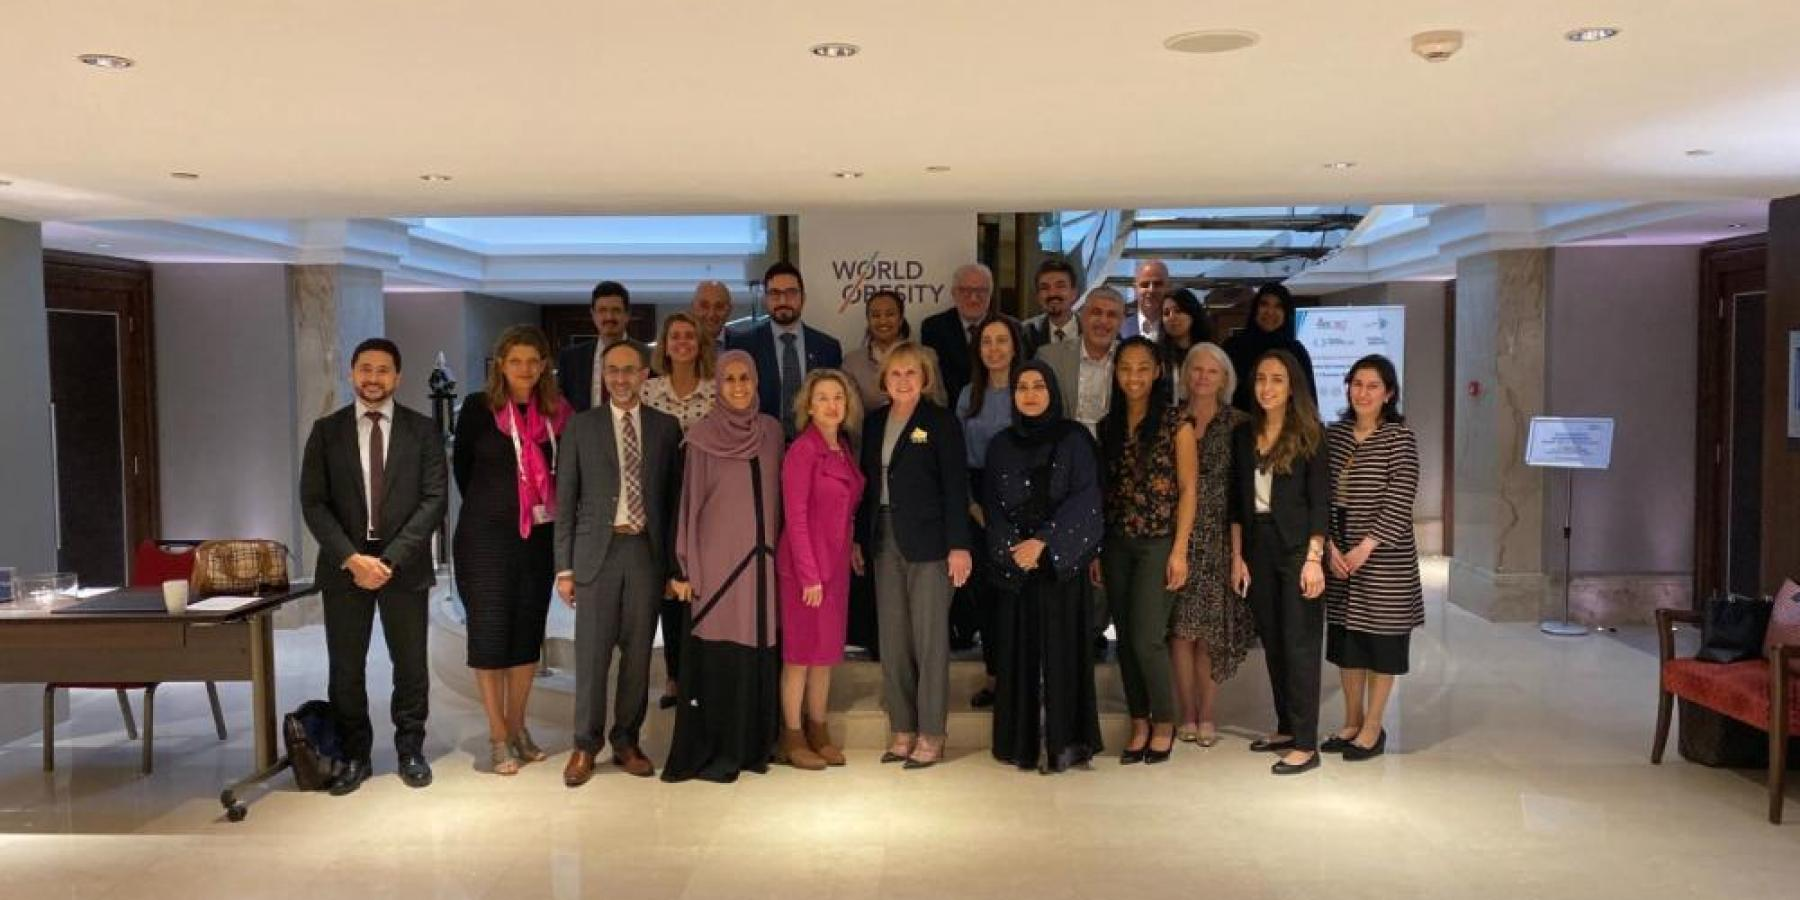 ©World Obesity Federation / World Obesity holds three events in Oman in December 2019